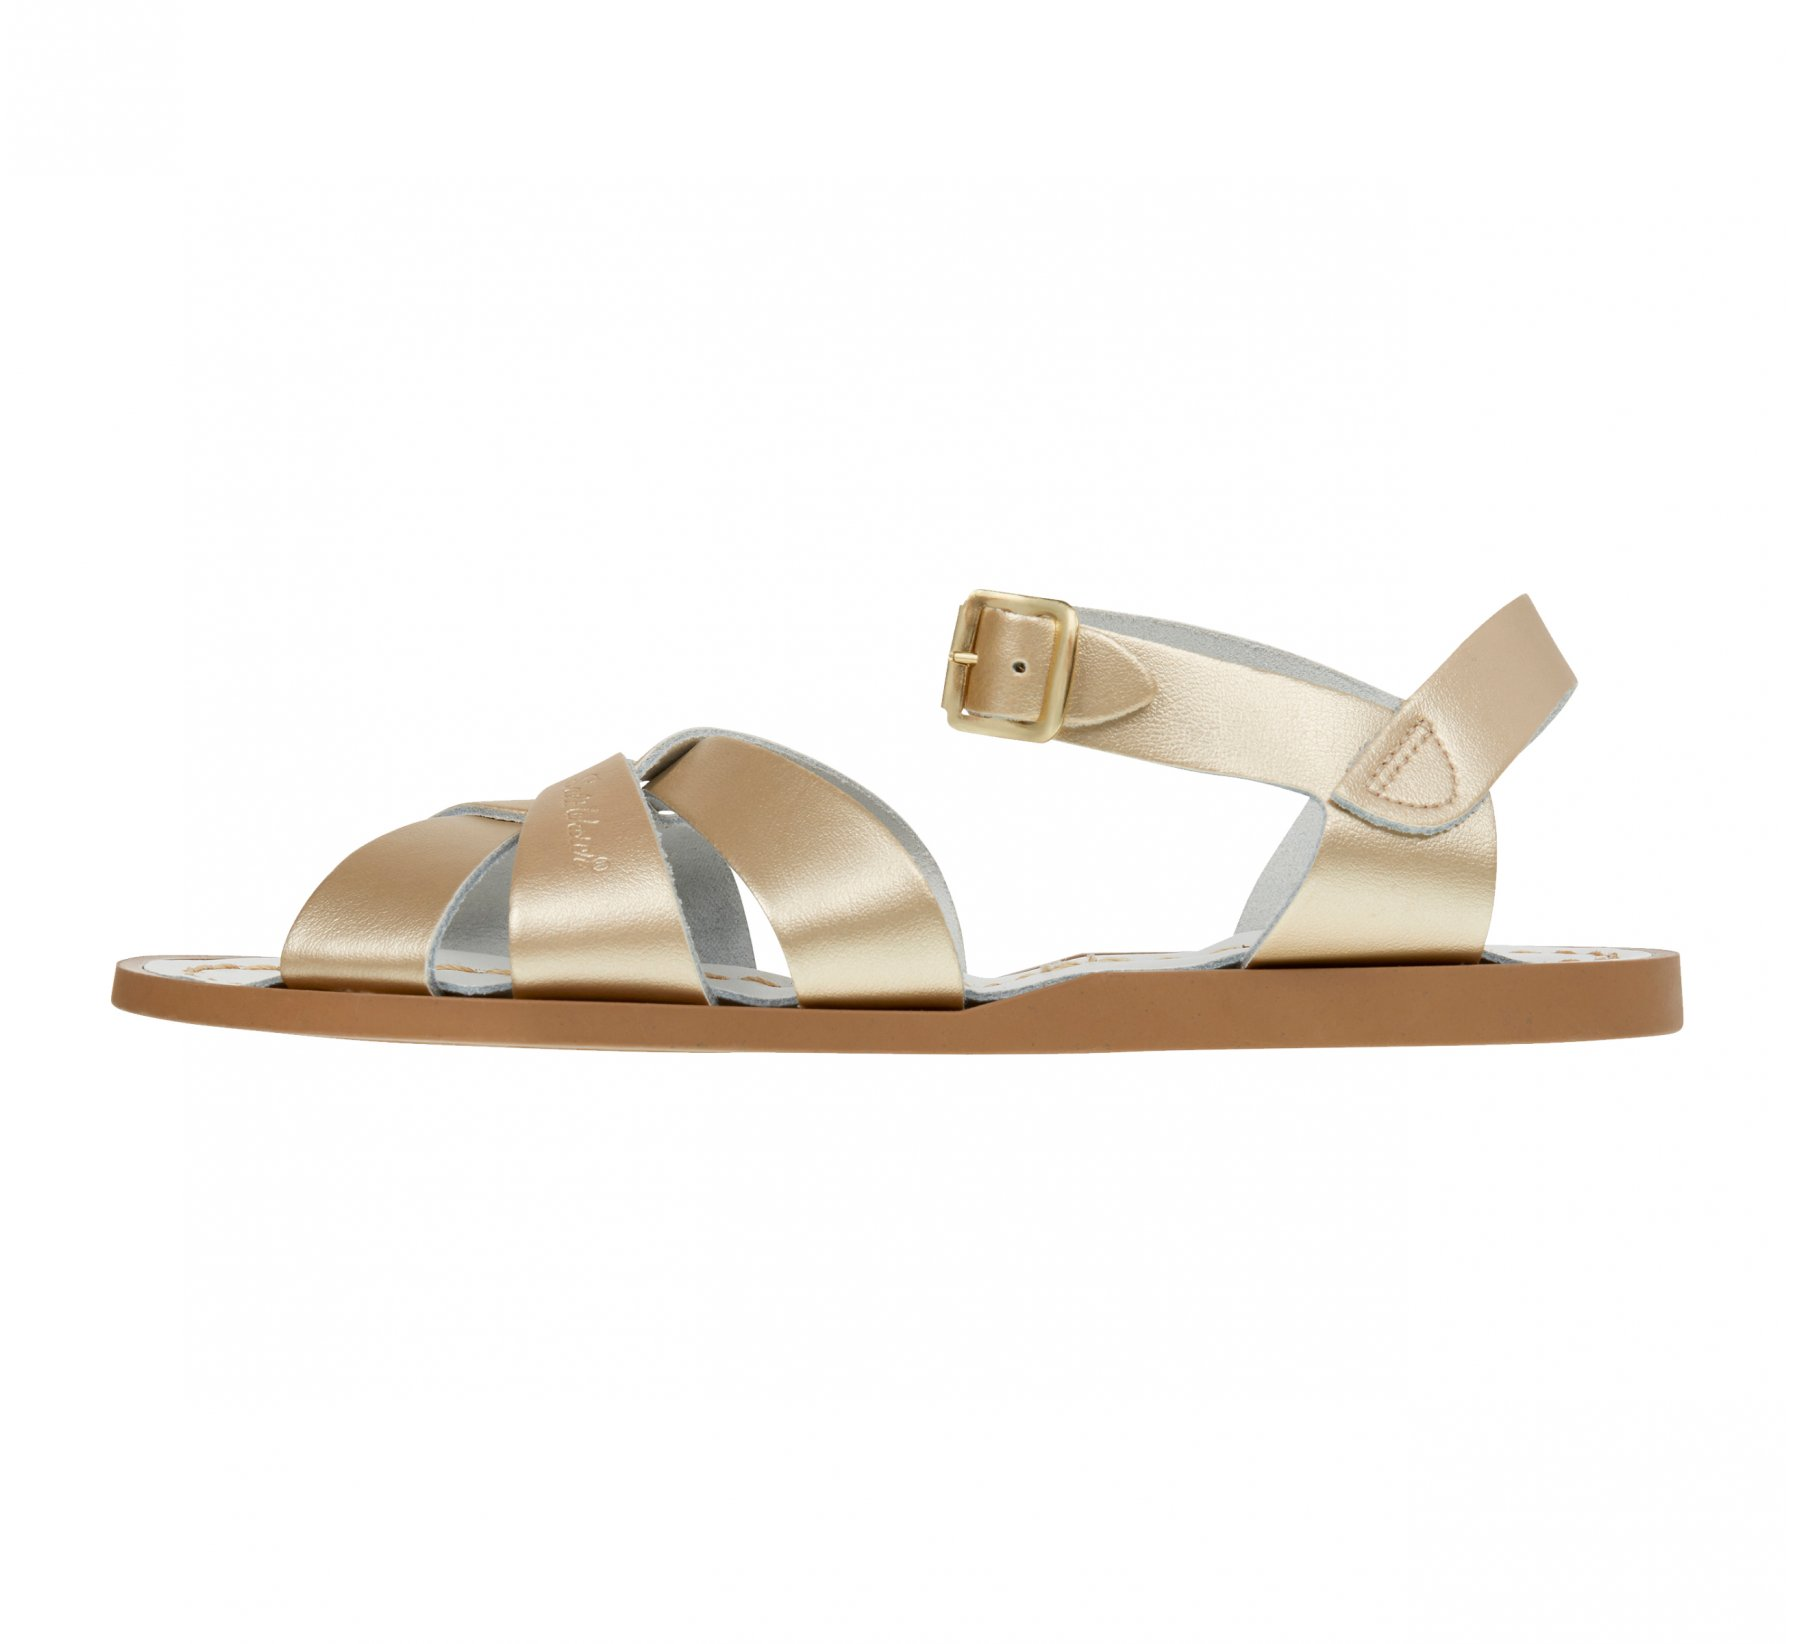 Original Doré - Salt Water Sandals